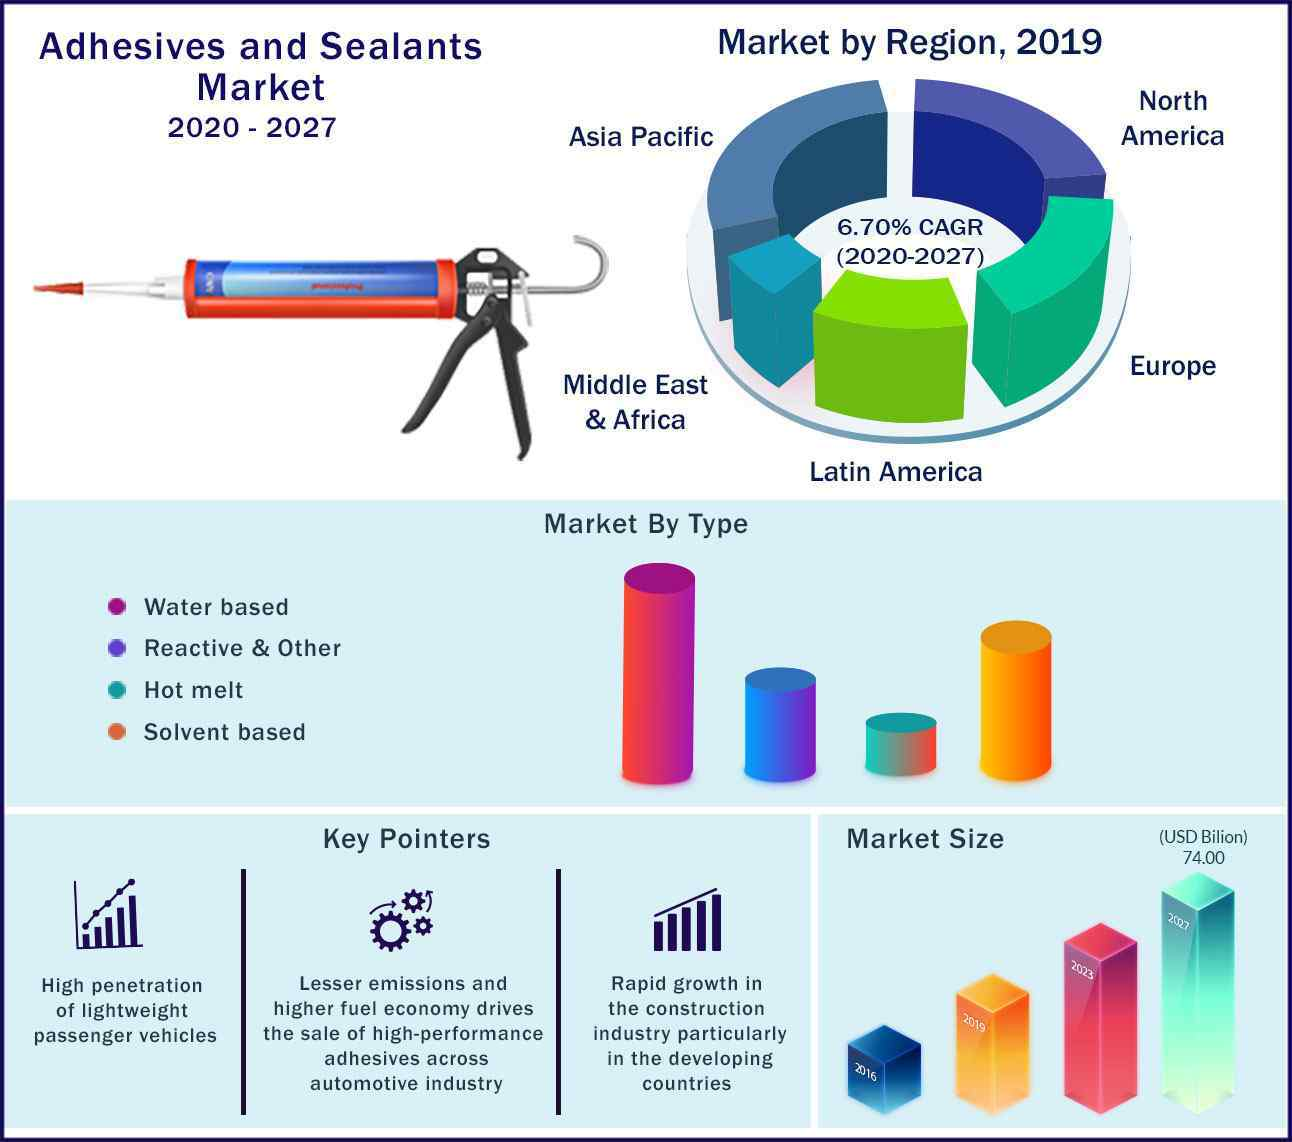 Global Adhesives and Sealants Market 2020 to 2027